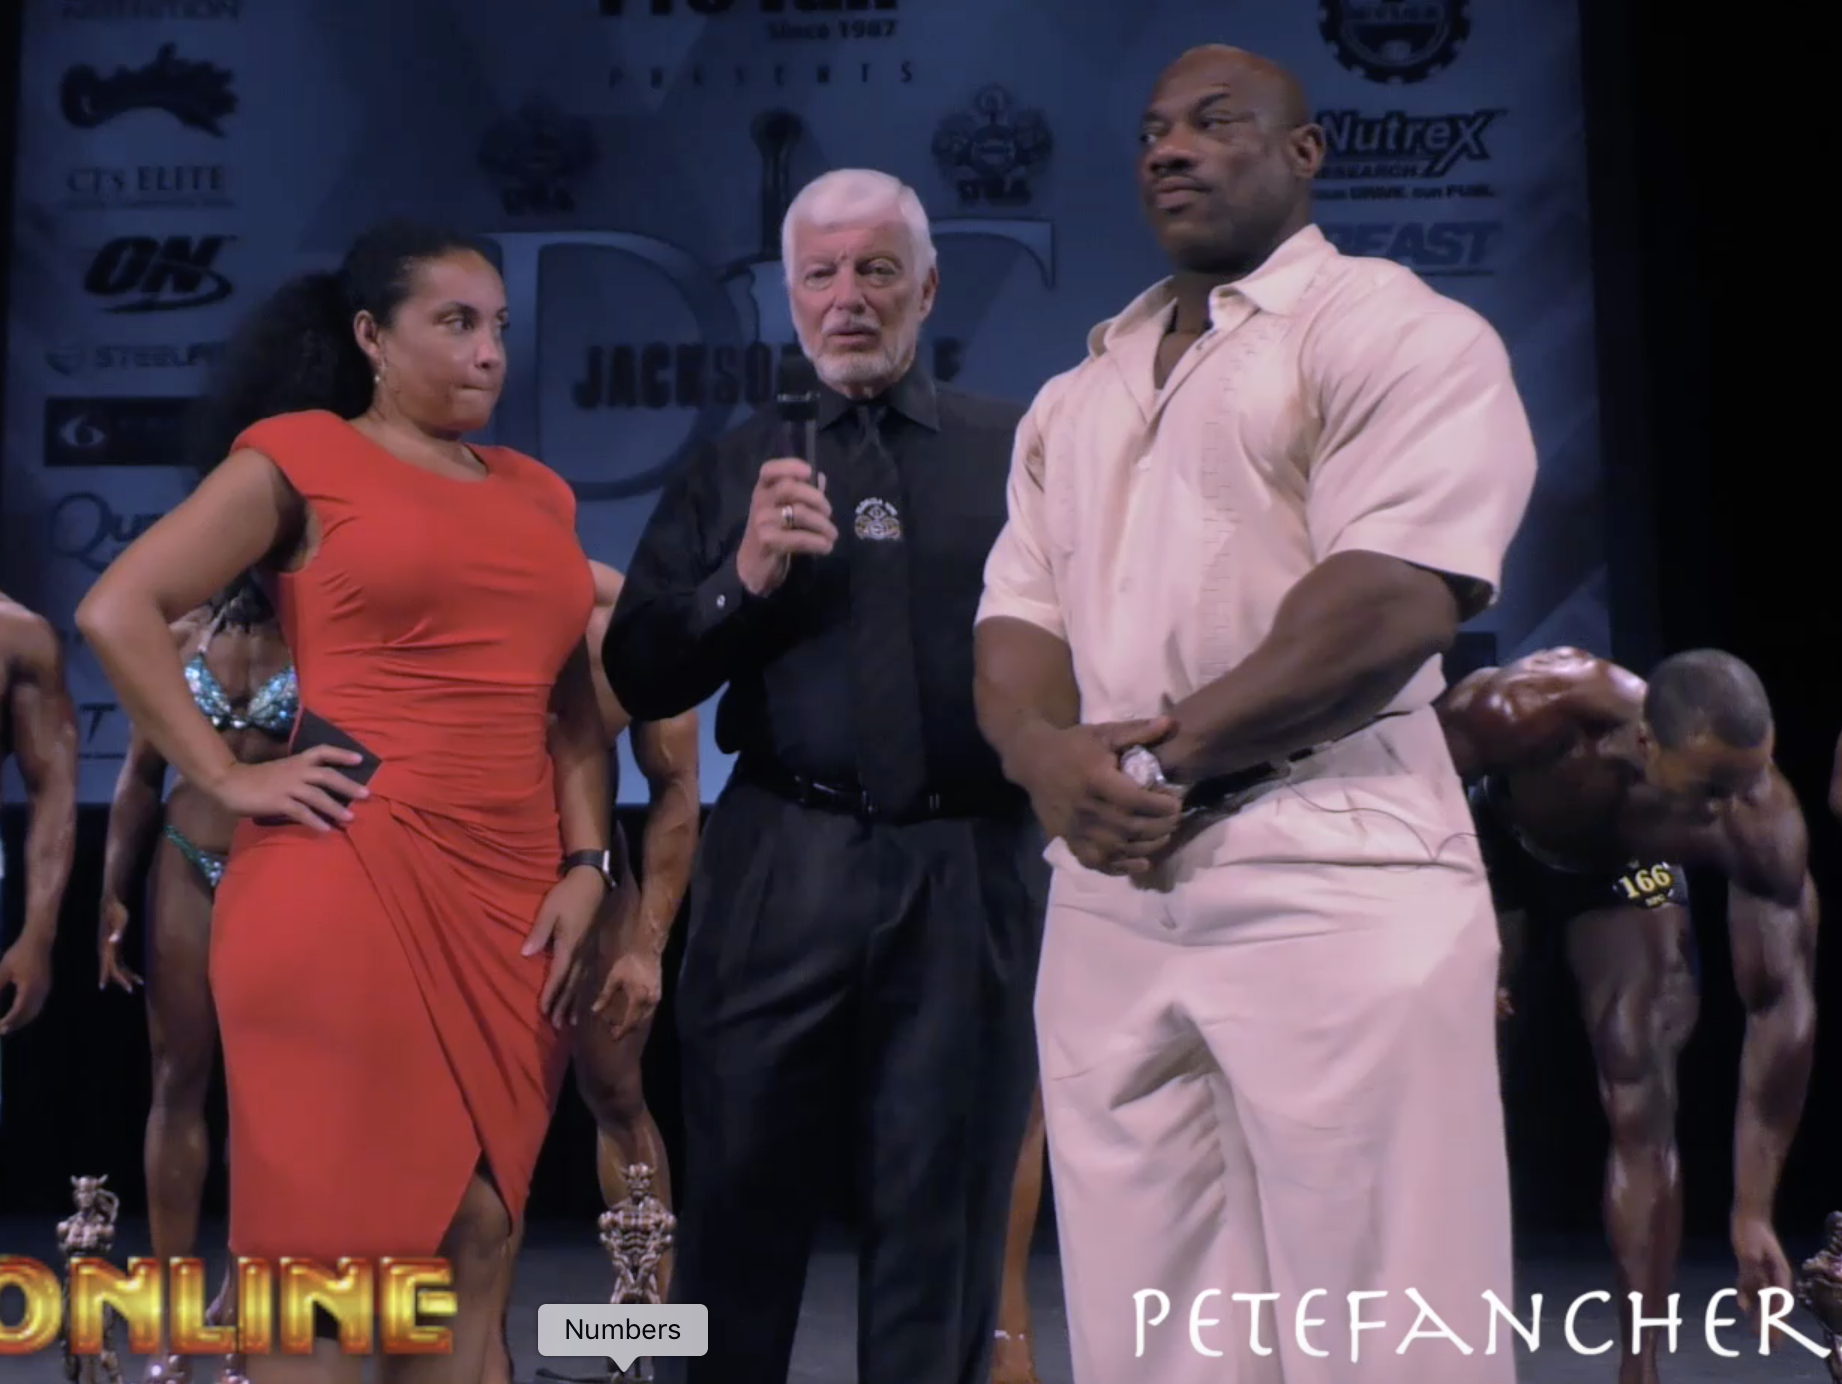 IFBB Pro Dexter Jackson & Gale Elie Interviewed By NPC District Chairman Pete Fancher At The 2017 NPC Dexter Jackson Classic